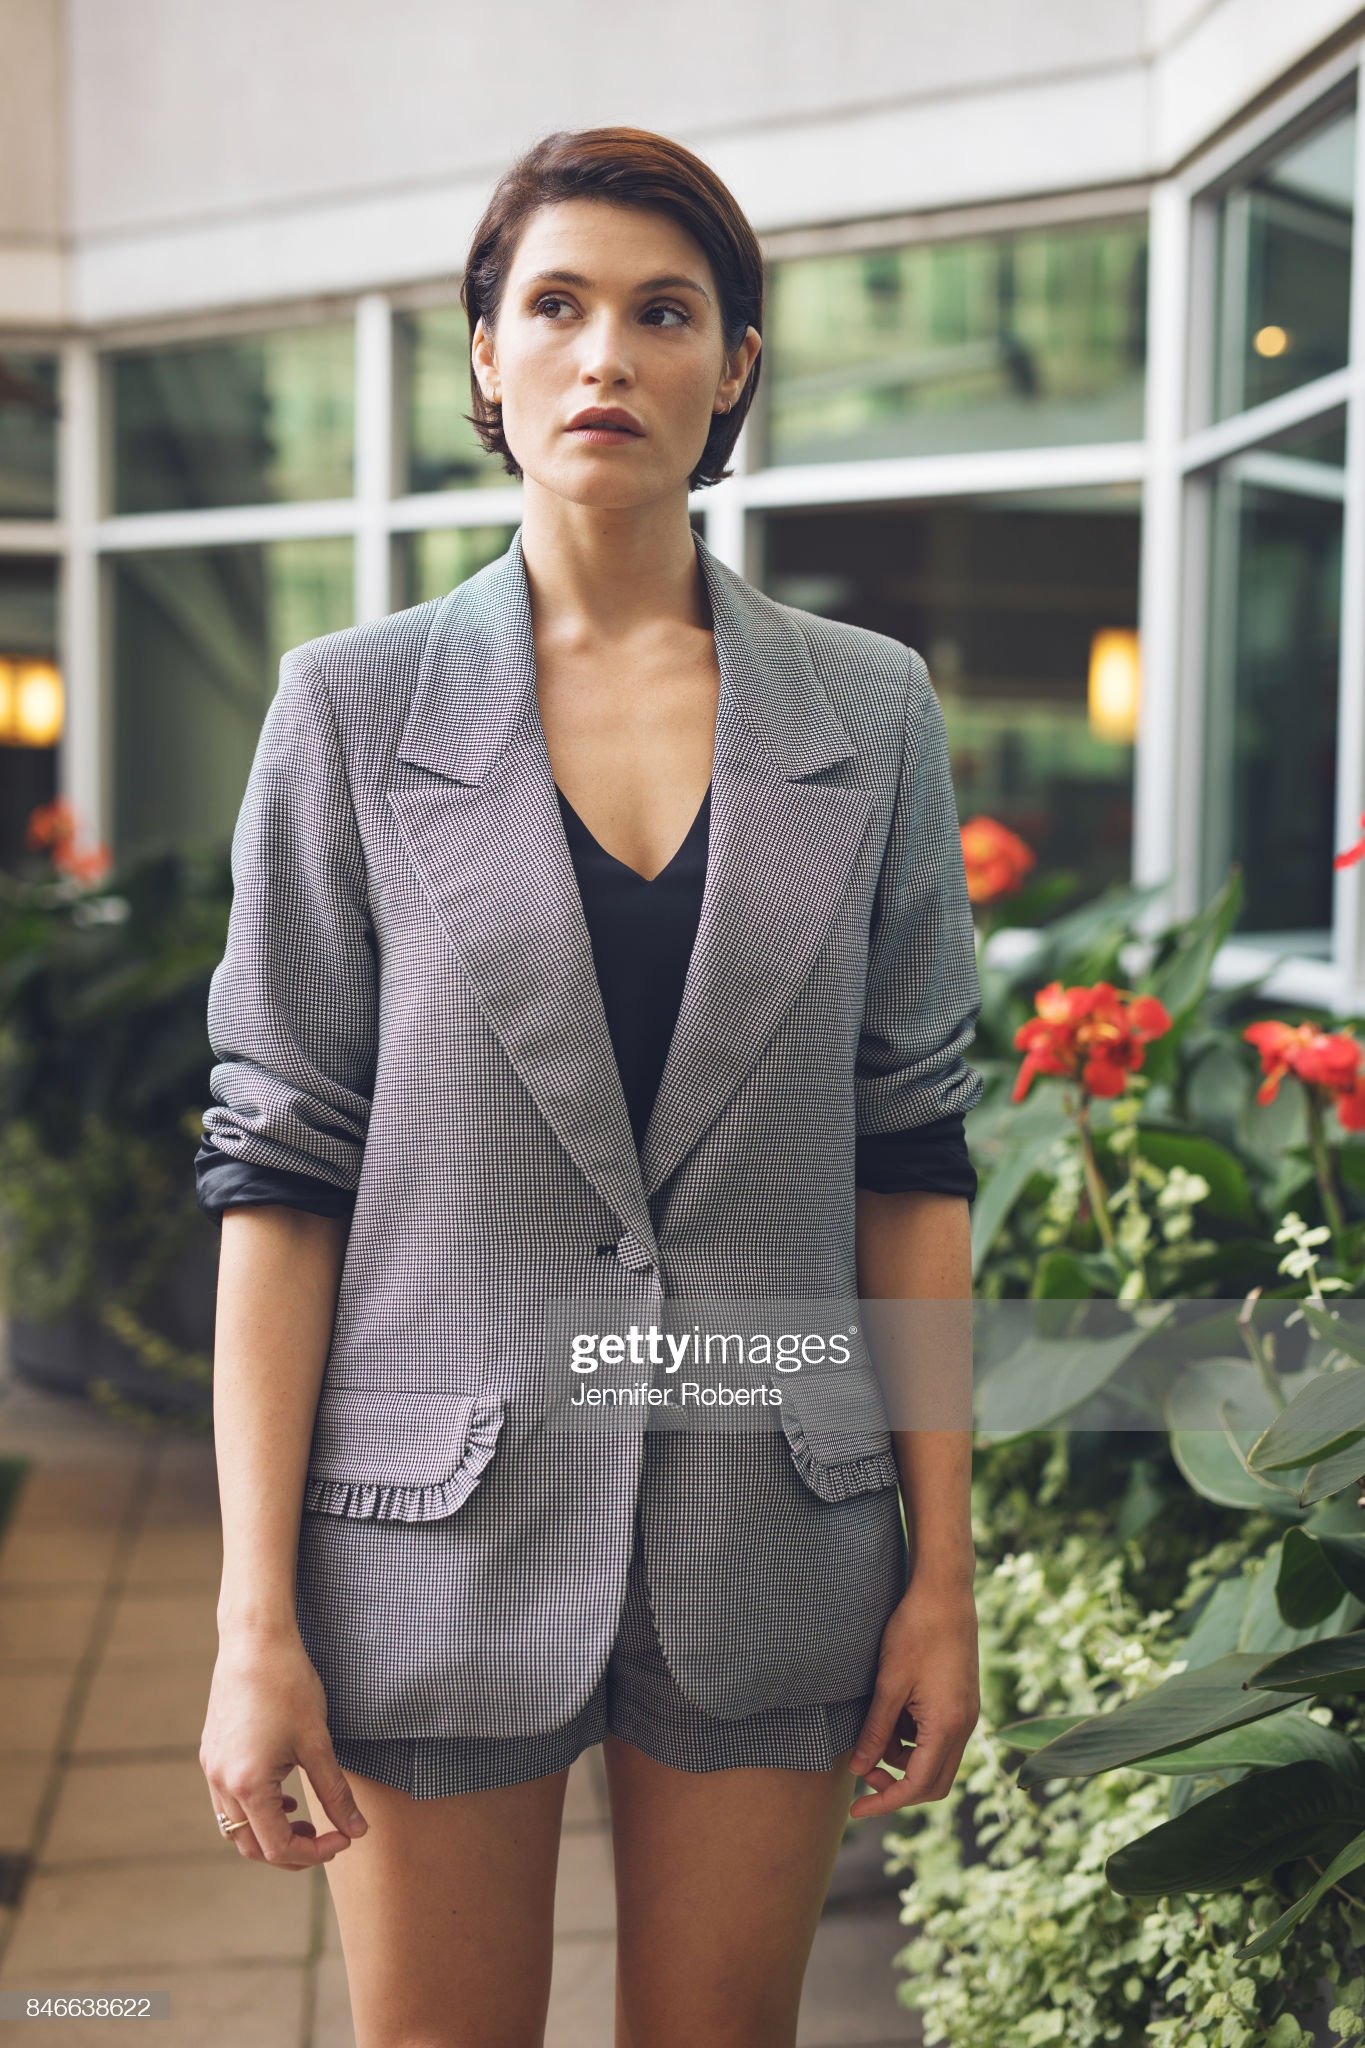 actress-gemma-arterton-of-the-escape-is-photographed-at-the-2017-picture-id846638622